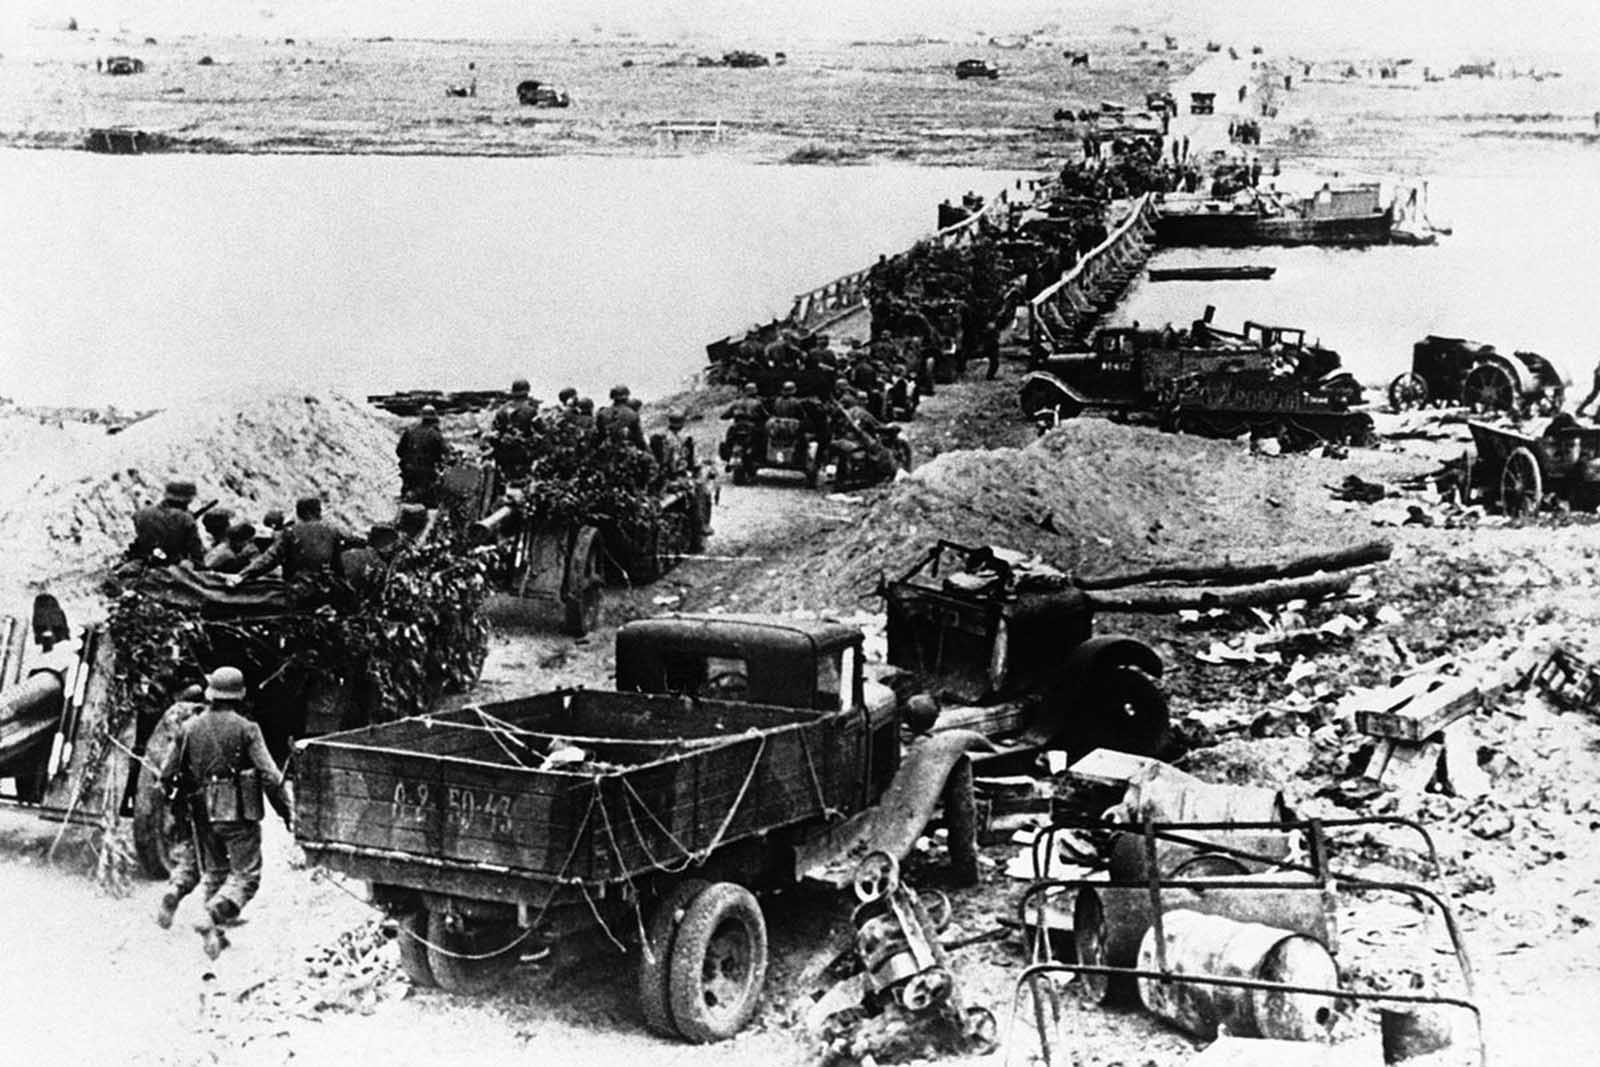 A German motorized artillery column crossing the Don river by means of a pontoon bridge on July 31, 1942. Wrecked equipment and materiel of all kinds lies strewn around as the crossing is made.